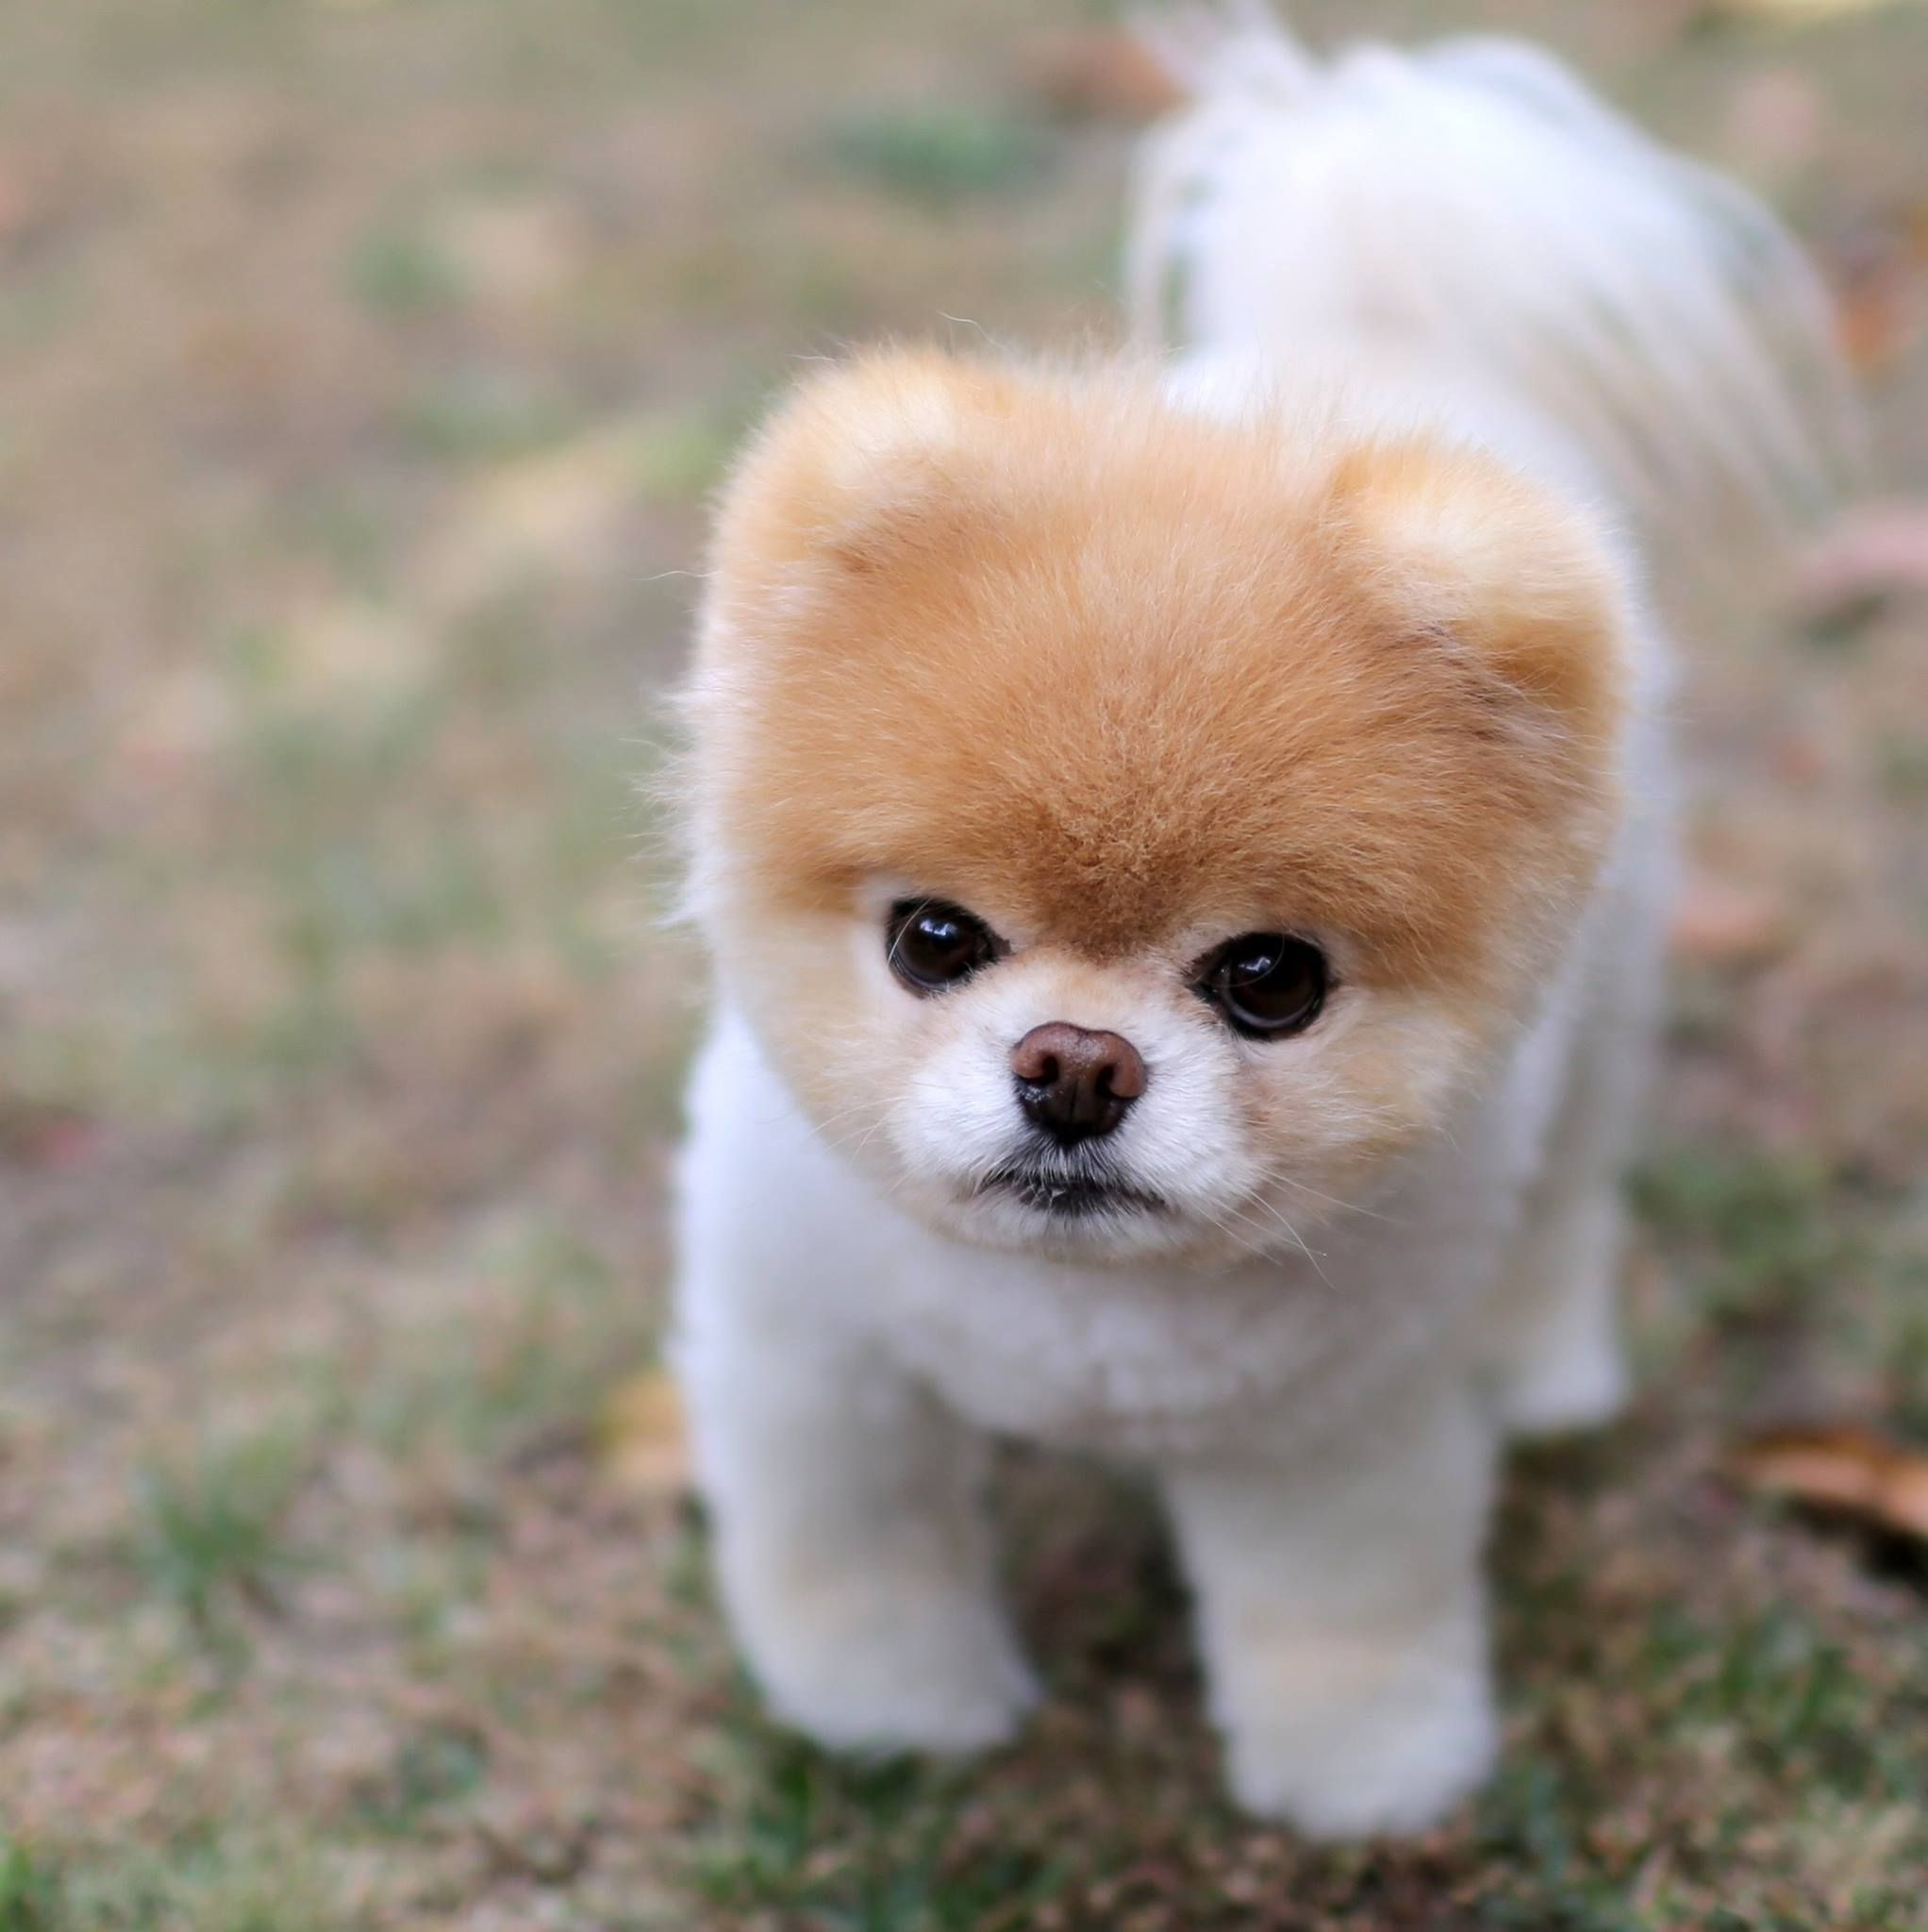 mad boo Boo the dog, World cutest dog, Puppies names female